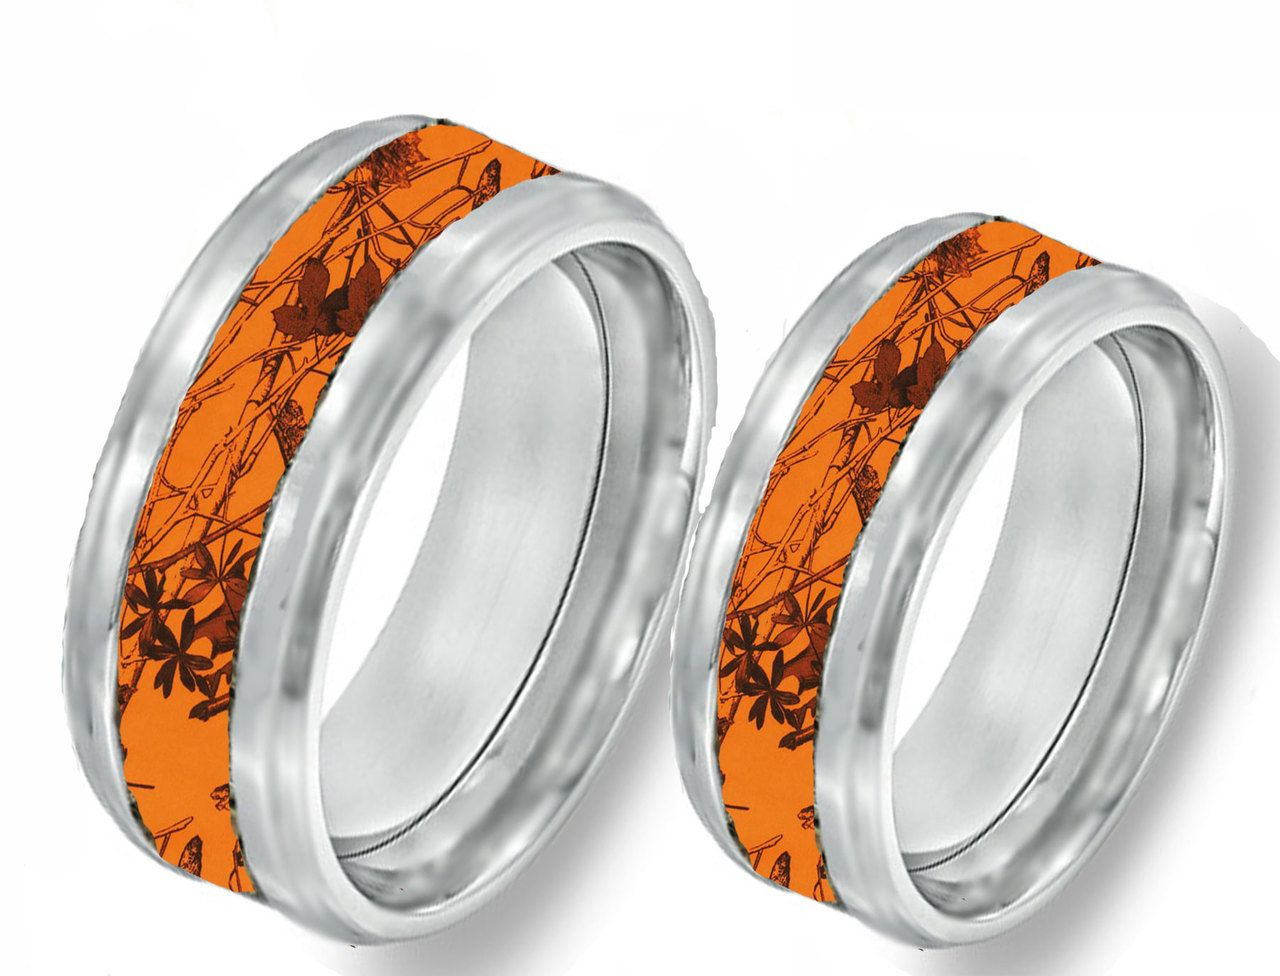 orange camo band couples ring set - Orange Camo Wedding Rings